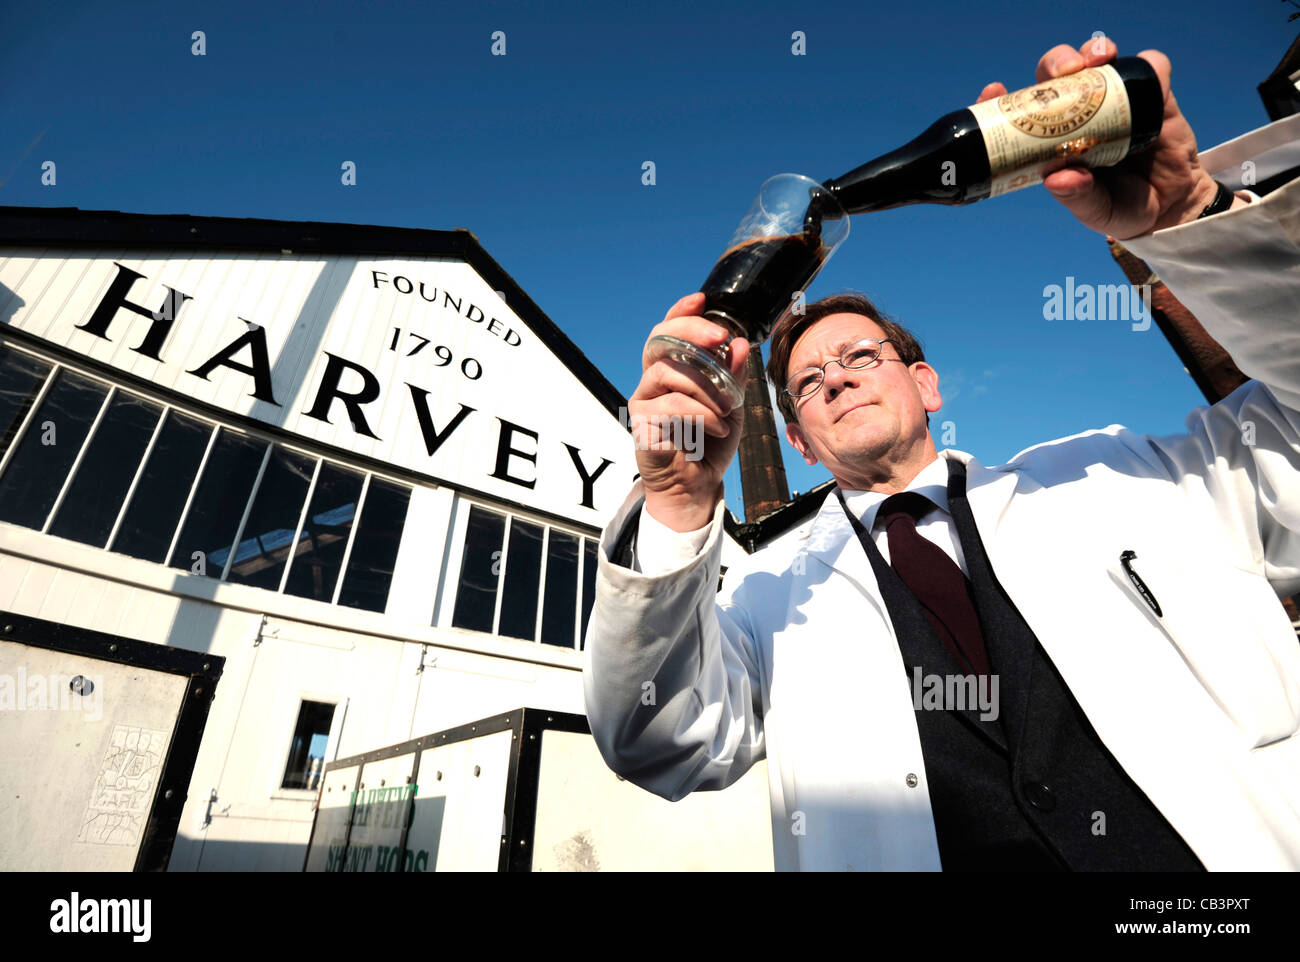 Miles Jenner, Head Brewer of Harveys in yard with award winning Imperial Extra Double Russian stout - Stock Image